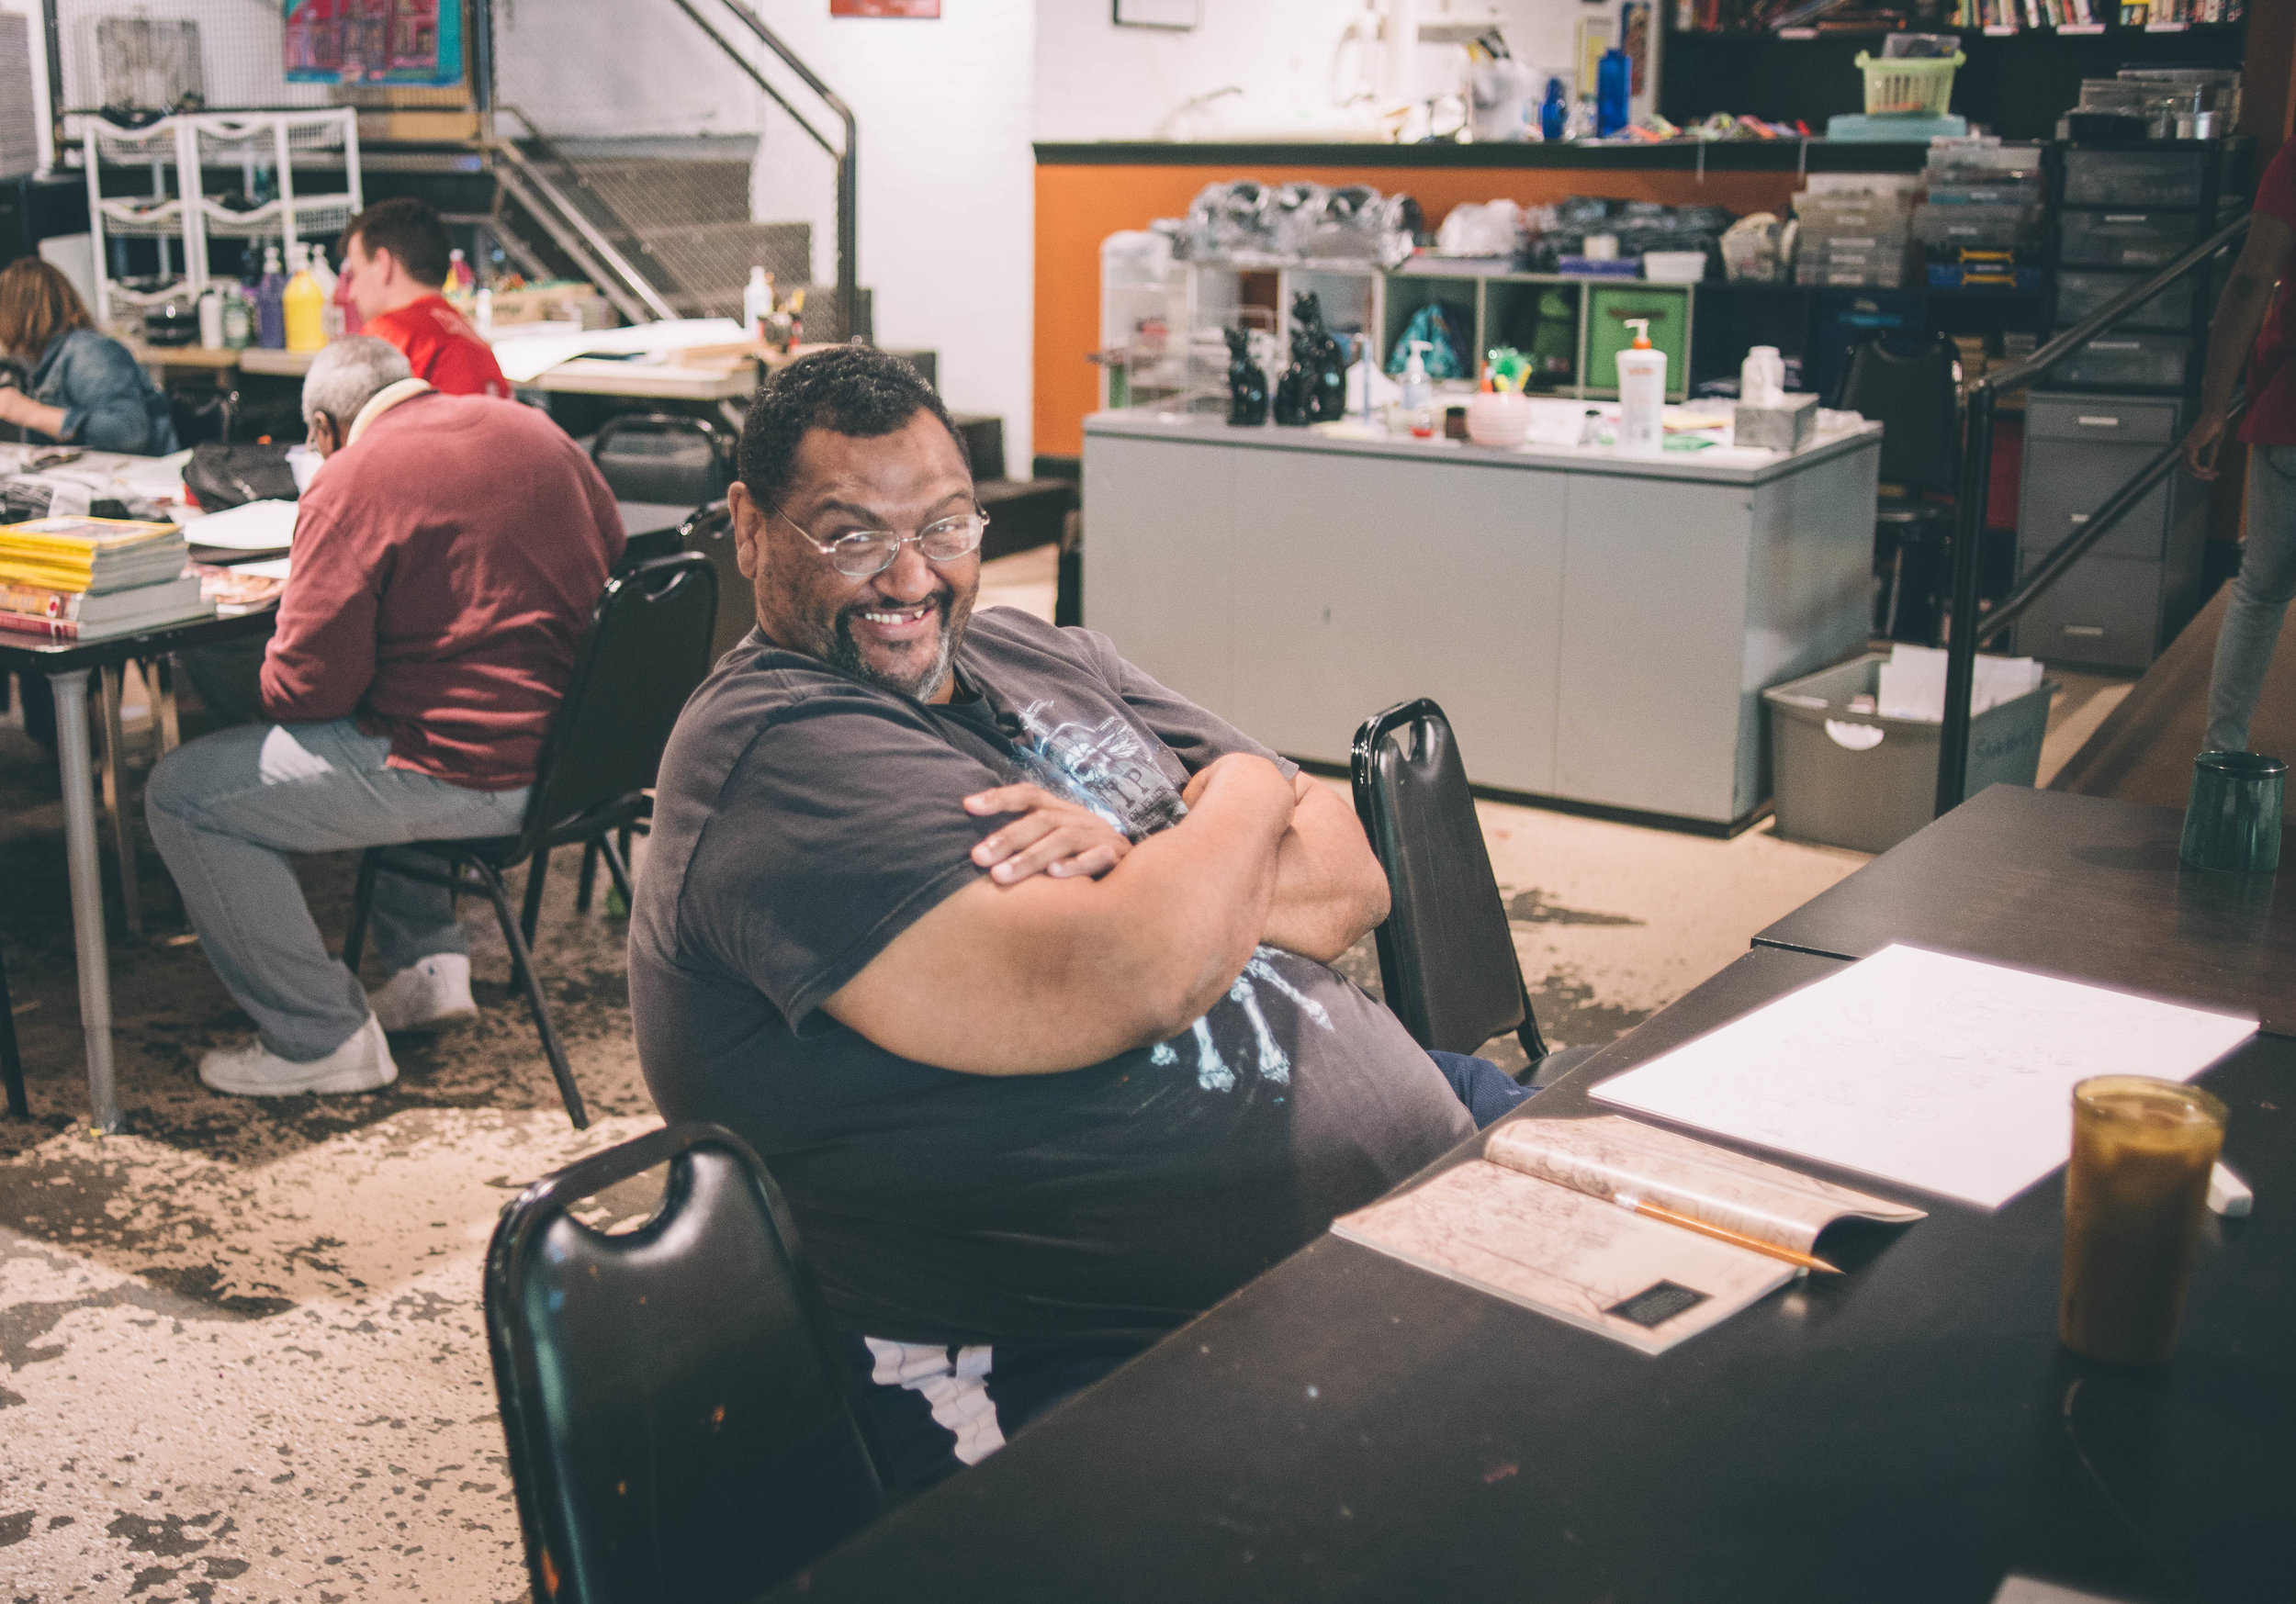 image of an individual smiling and laughing, looking in the direction of the camera. They are in an art studio setting, with paper and pencil on a table in front of them.